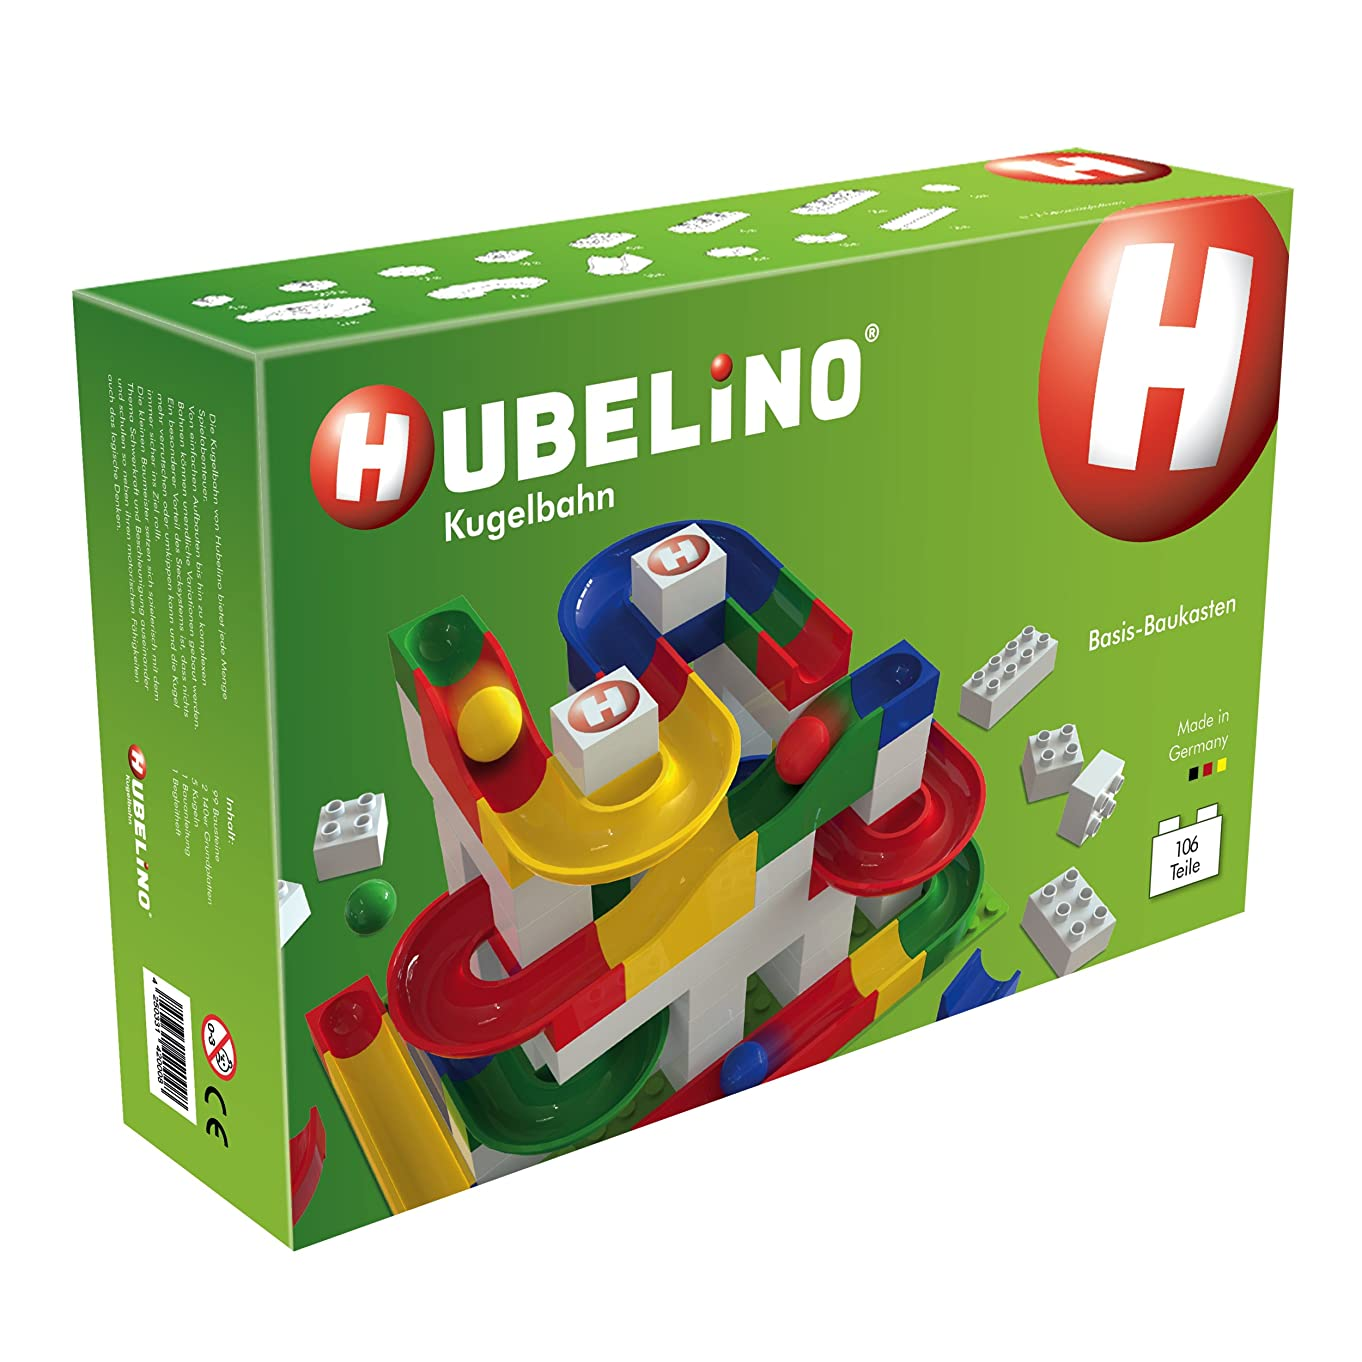 HUBELINO Marble Run - 106-Piece Basic Building Box - the Original! Made in Germany! - Certified and Award-Winning Marble Run - 100% compatible with Duplo